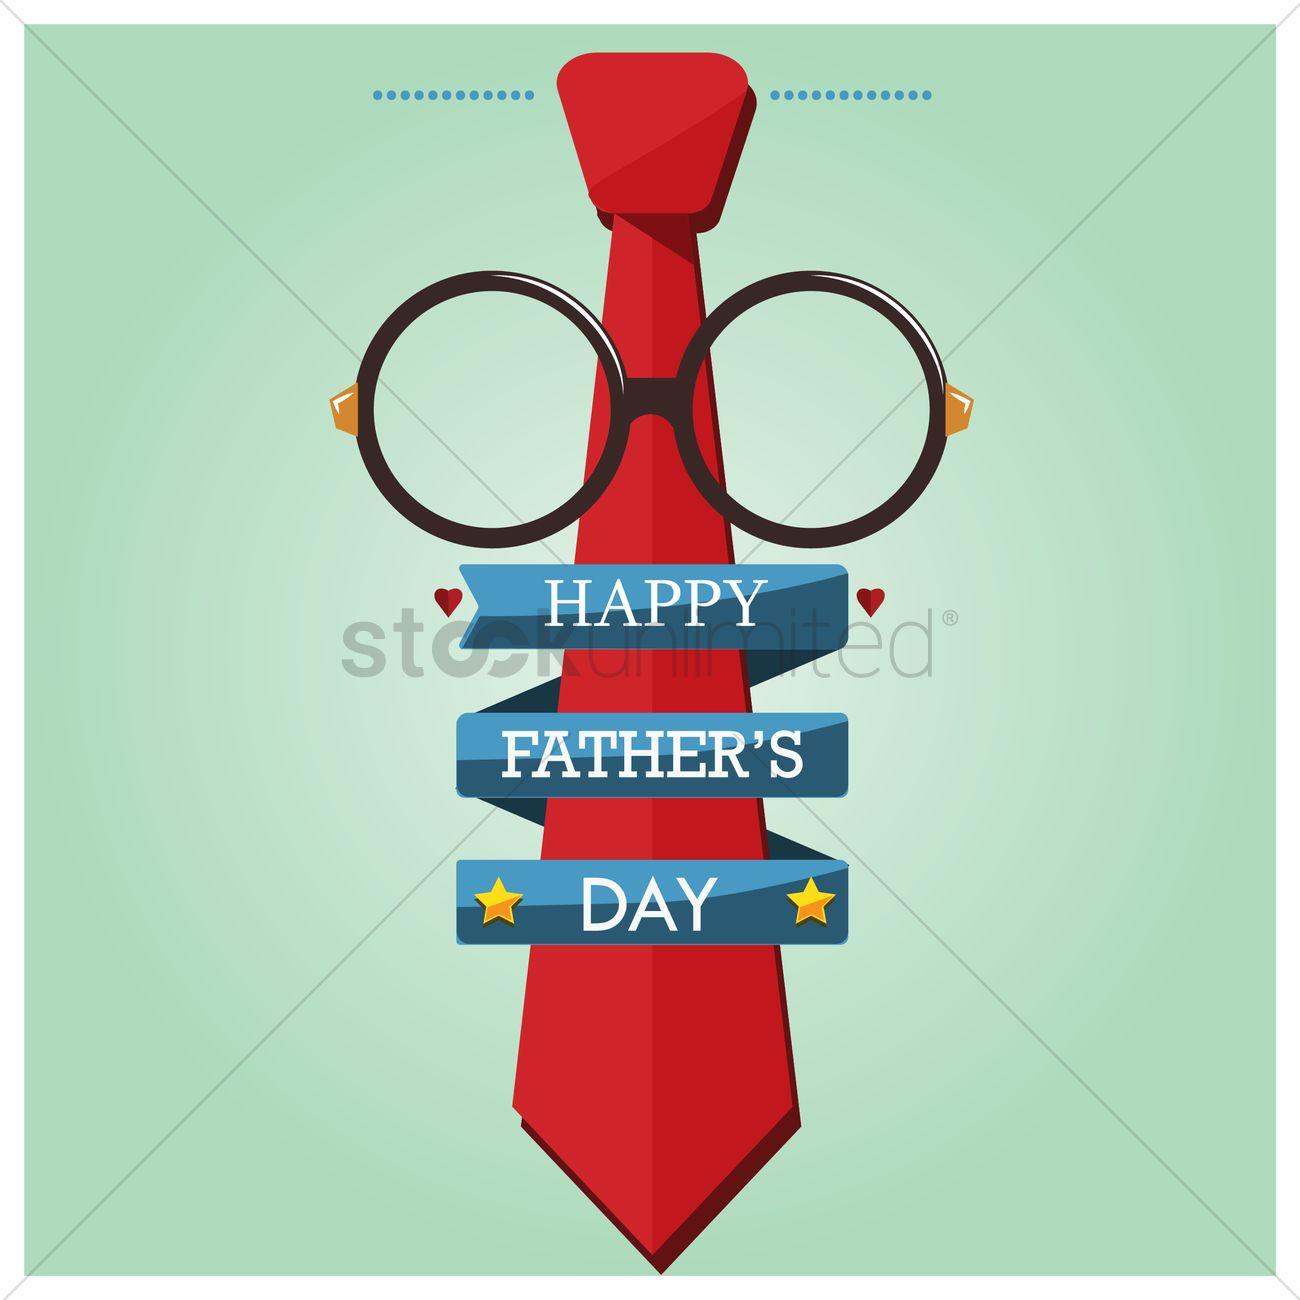 Happy fathers day wallpaper Vector Image   1585477 StockUnlimited 1300x1300